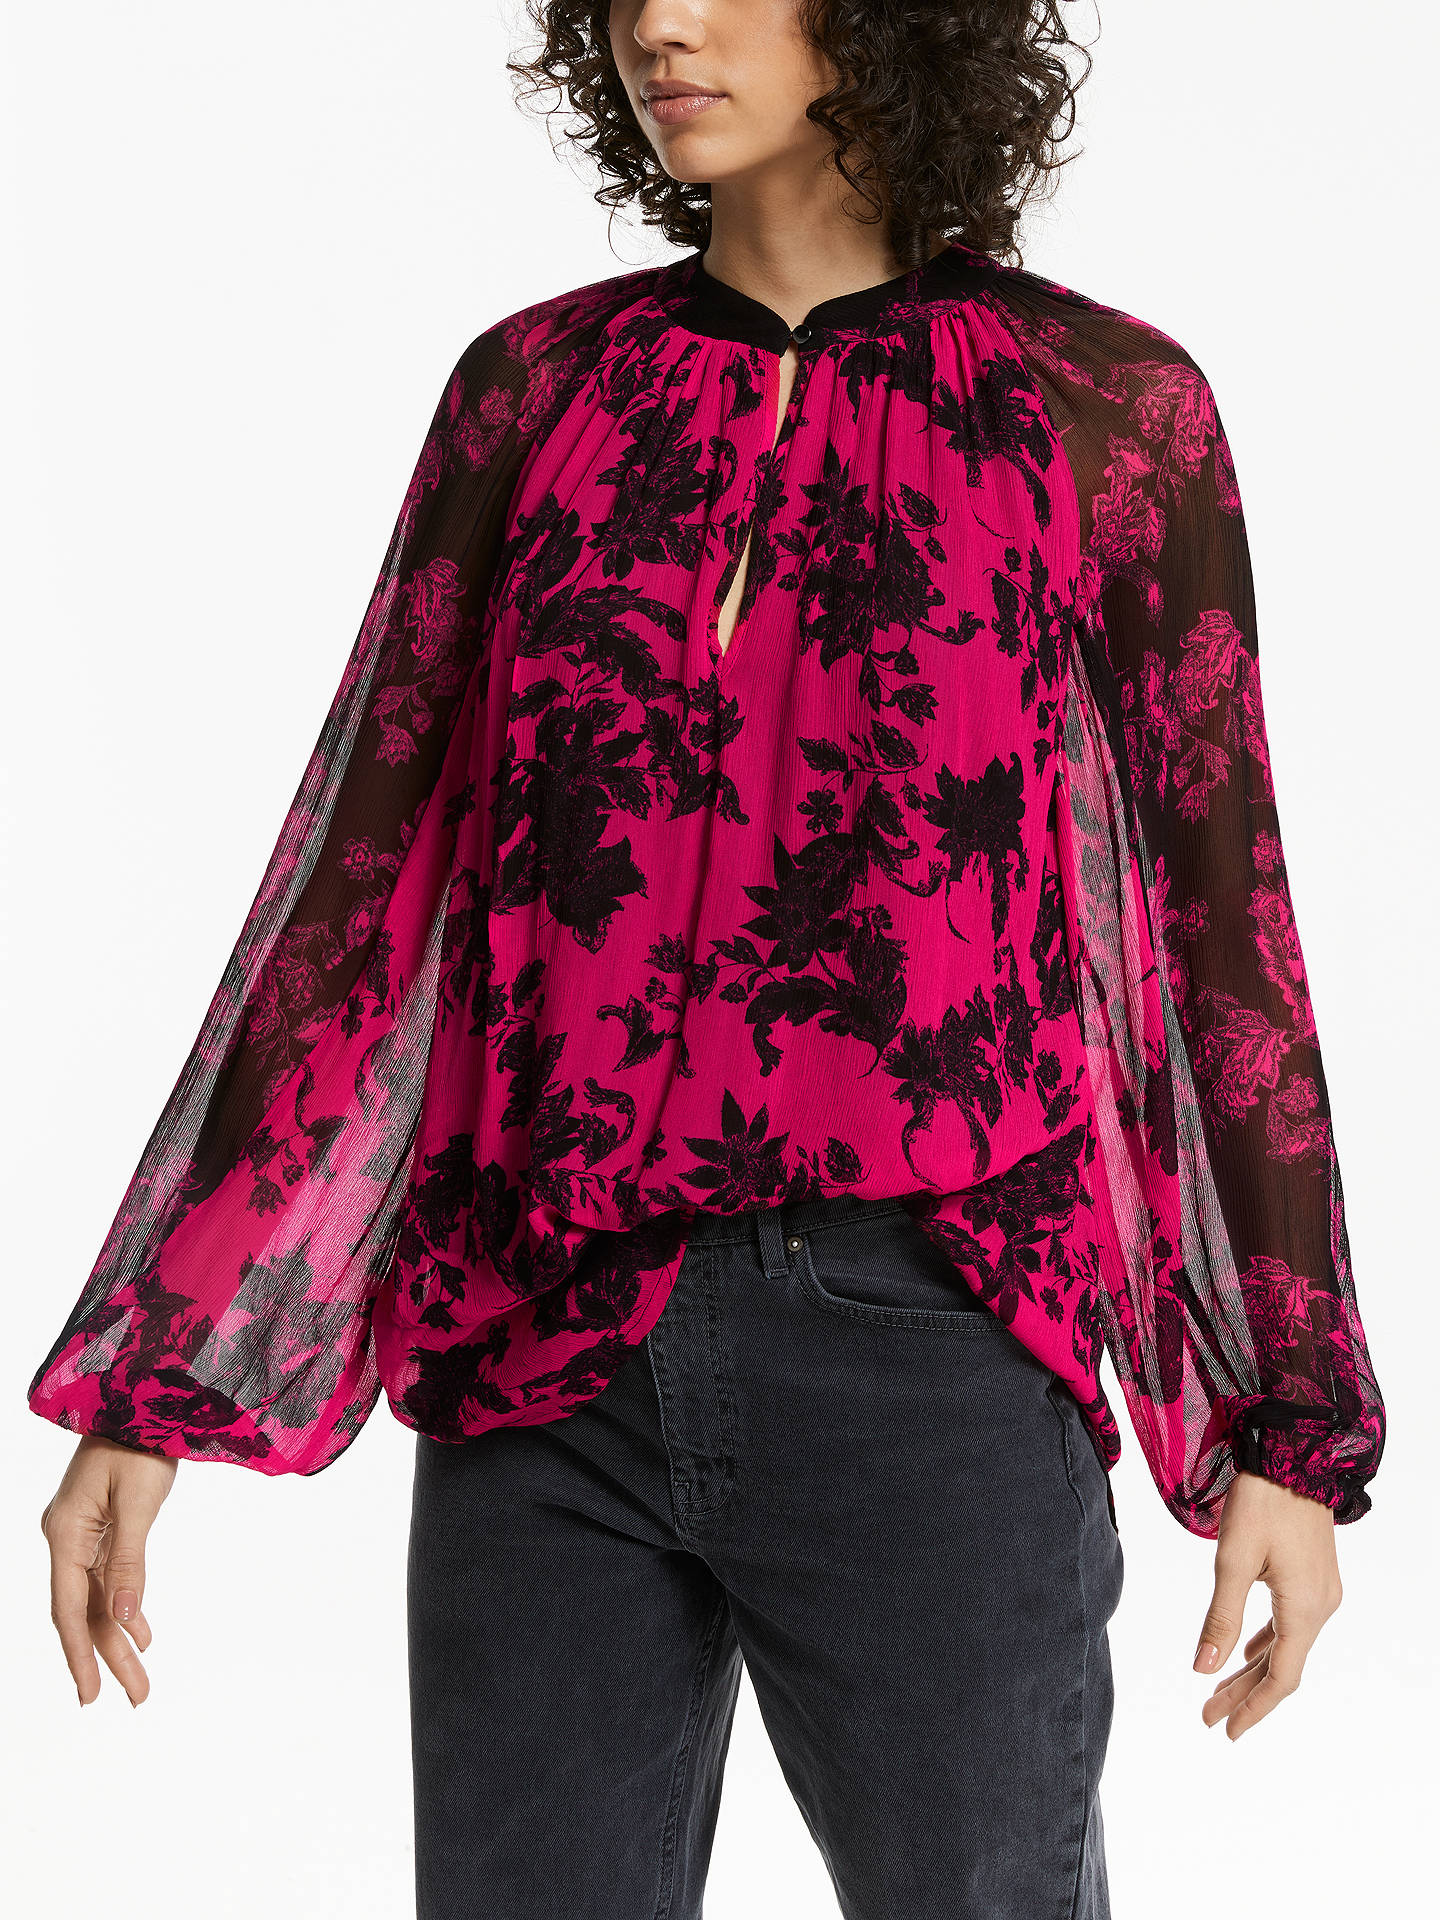 BuyAND/OR Adele High Neck 80s Floral Blouse, Multi/Pink, 16 Online at johnlewis.com